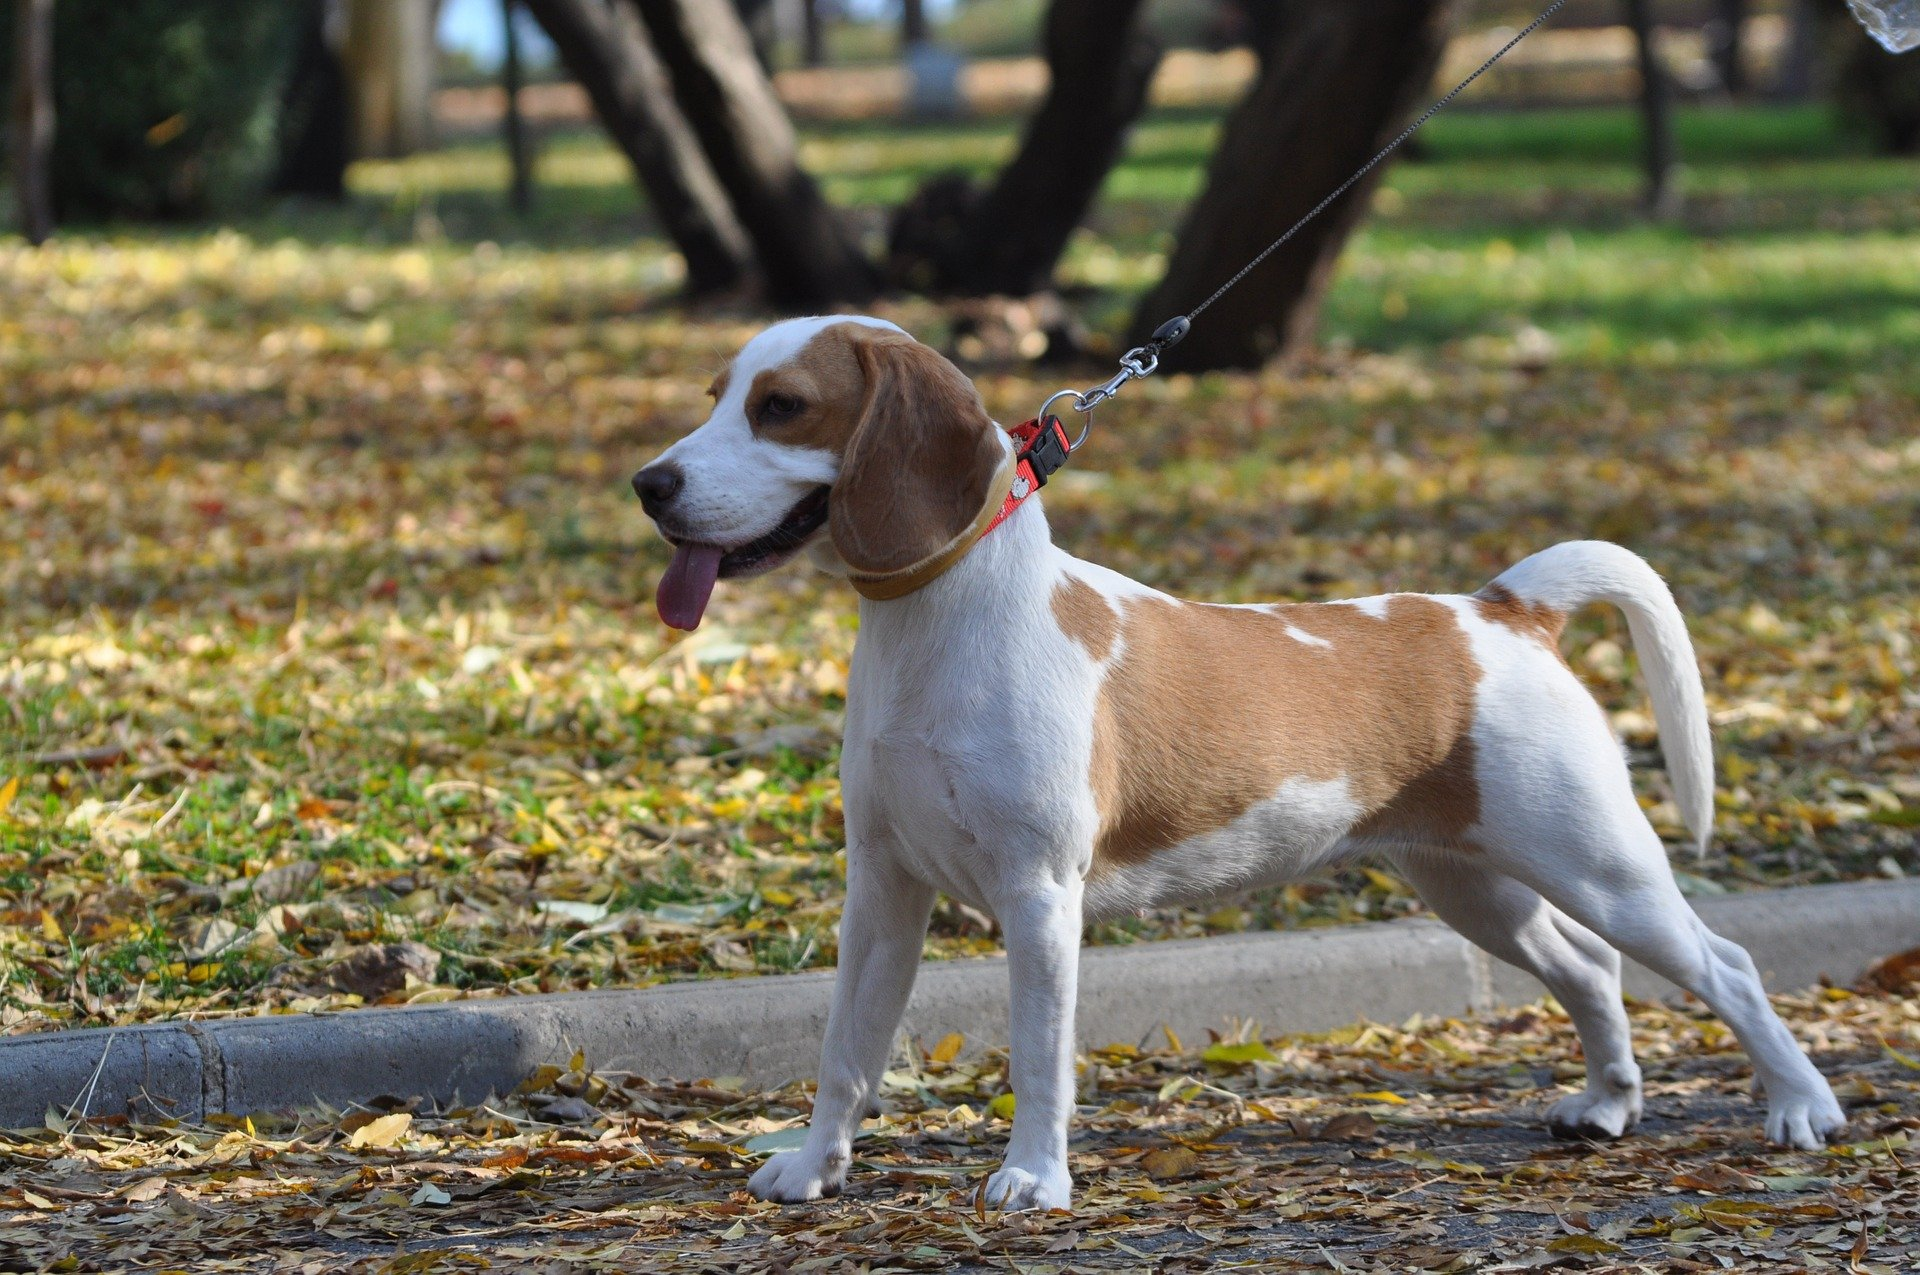 #Beagles come in a variety of colors ranging from black, white, tan, red, lemon and blue mottle. The tricolored variety is the most common | Animals Zone